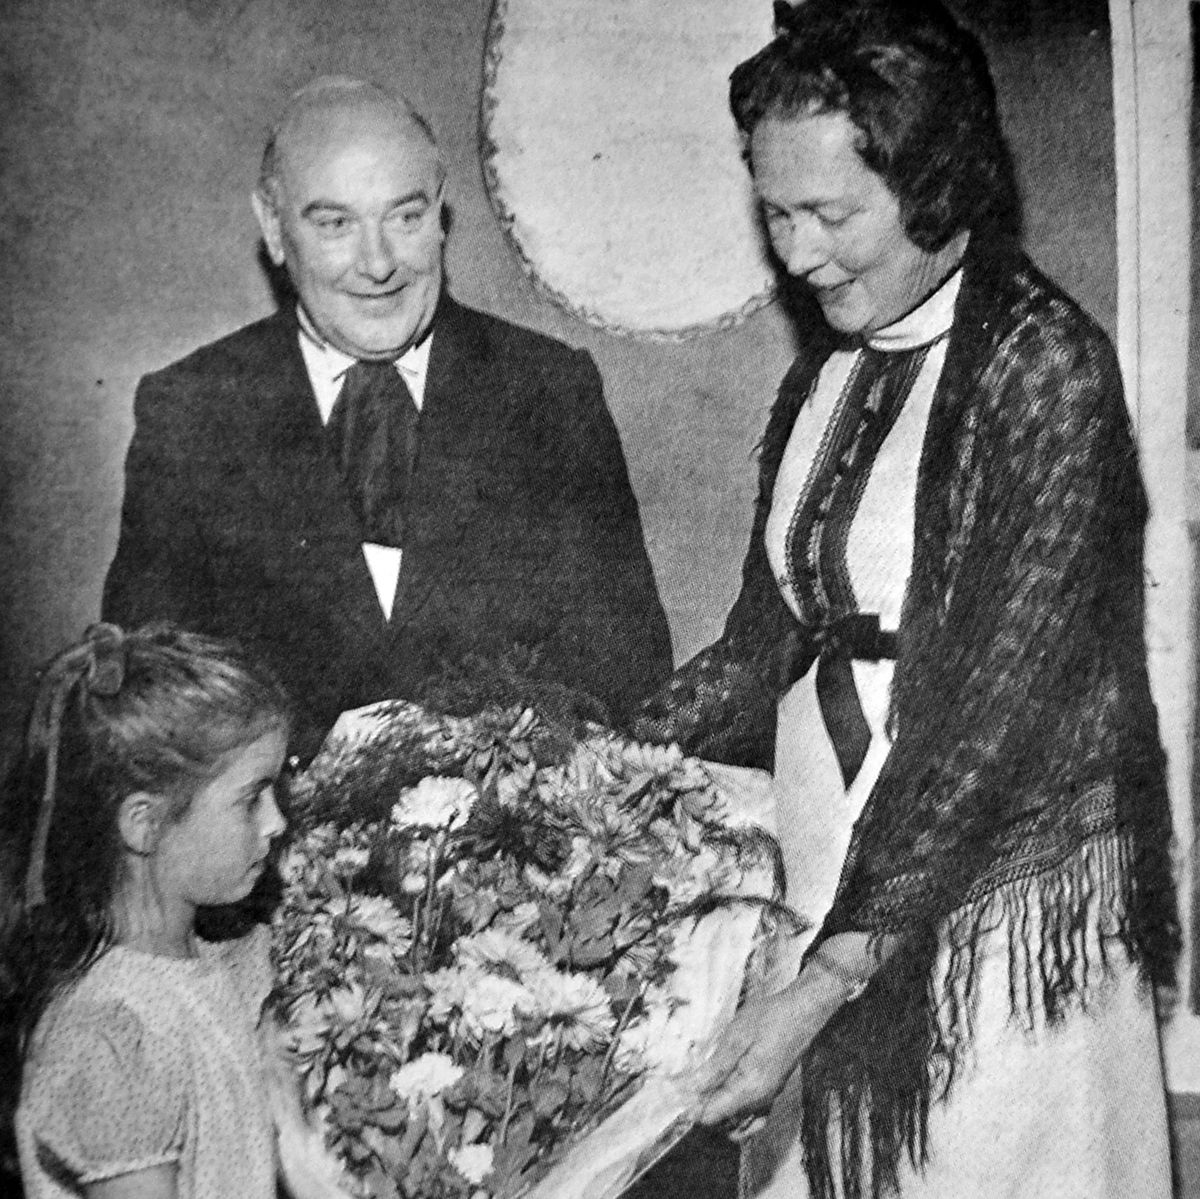 The opening on Thursday, October 7, 1971. Frances Williams presents Councillor Mrs Margaret Shaw with a bouquet on behalf of Wellington Theatre Club. Looking on is Frances' father, Roy, chairman of the club.